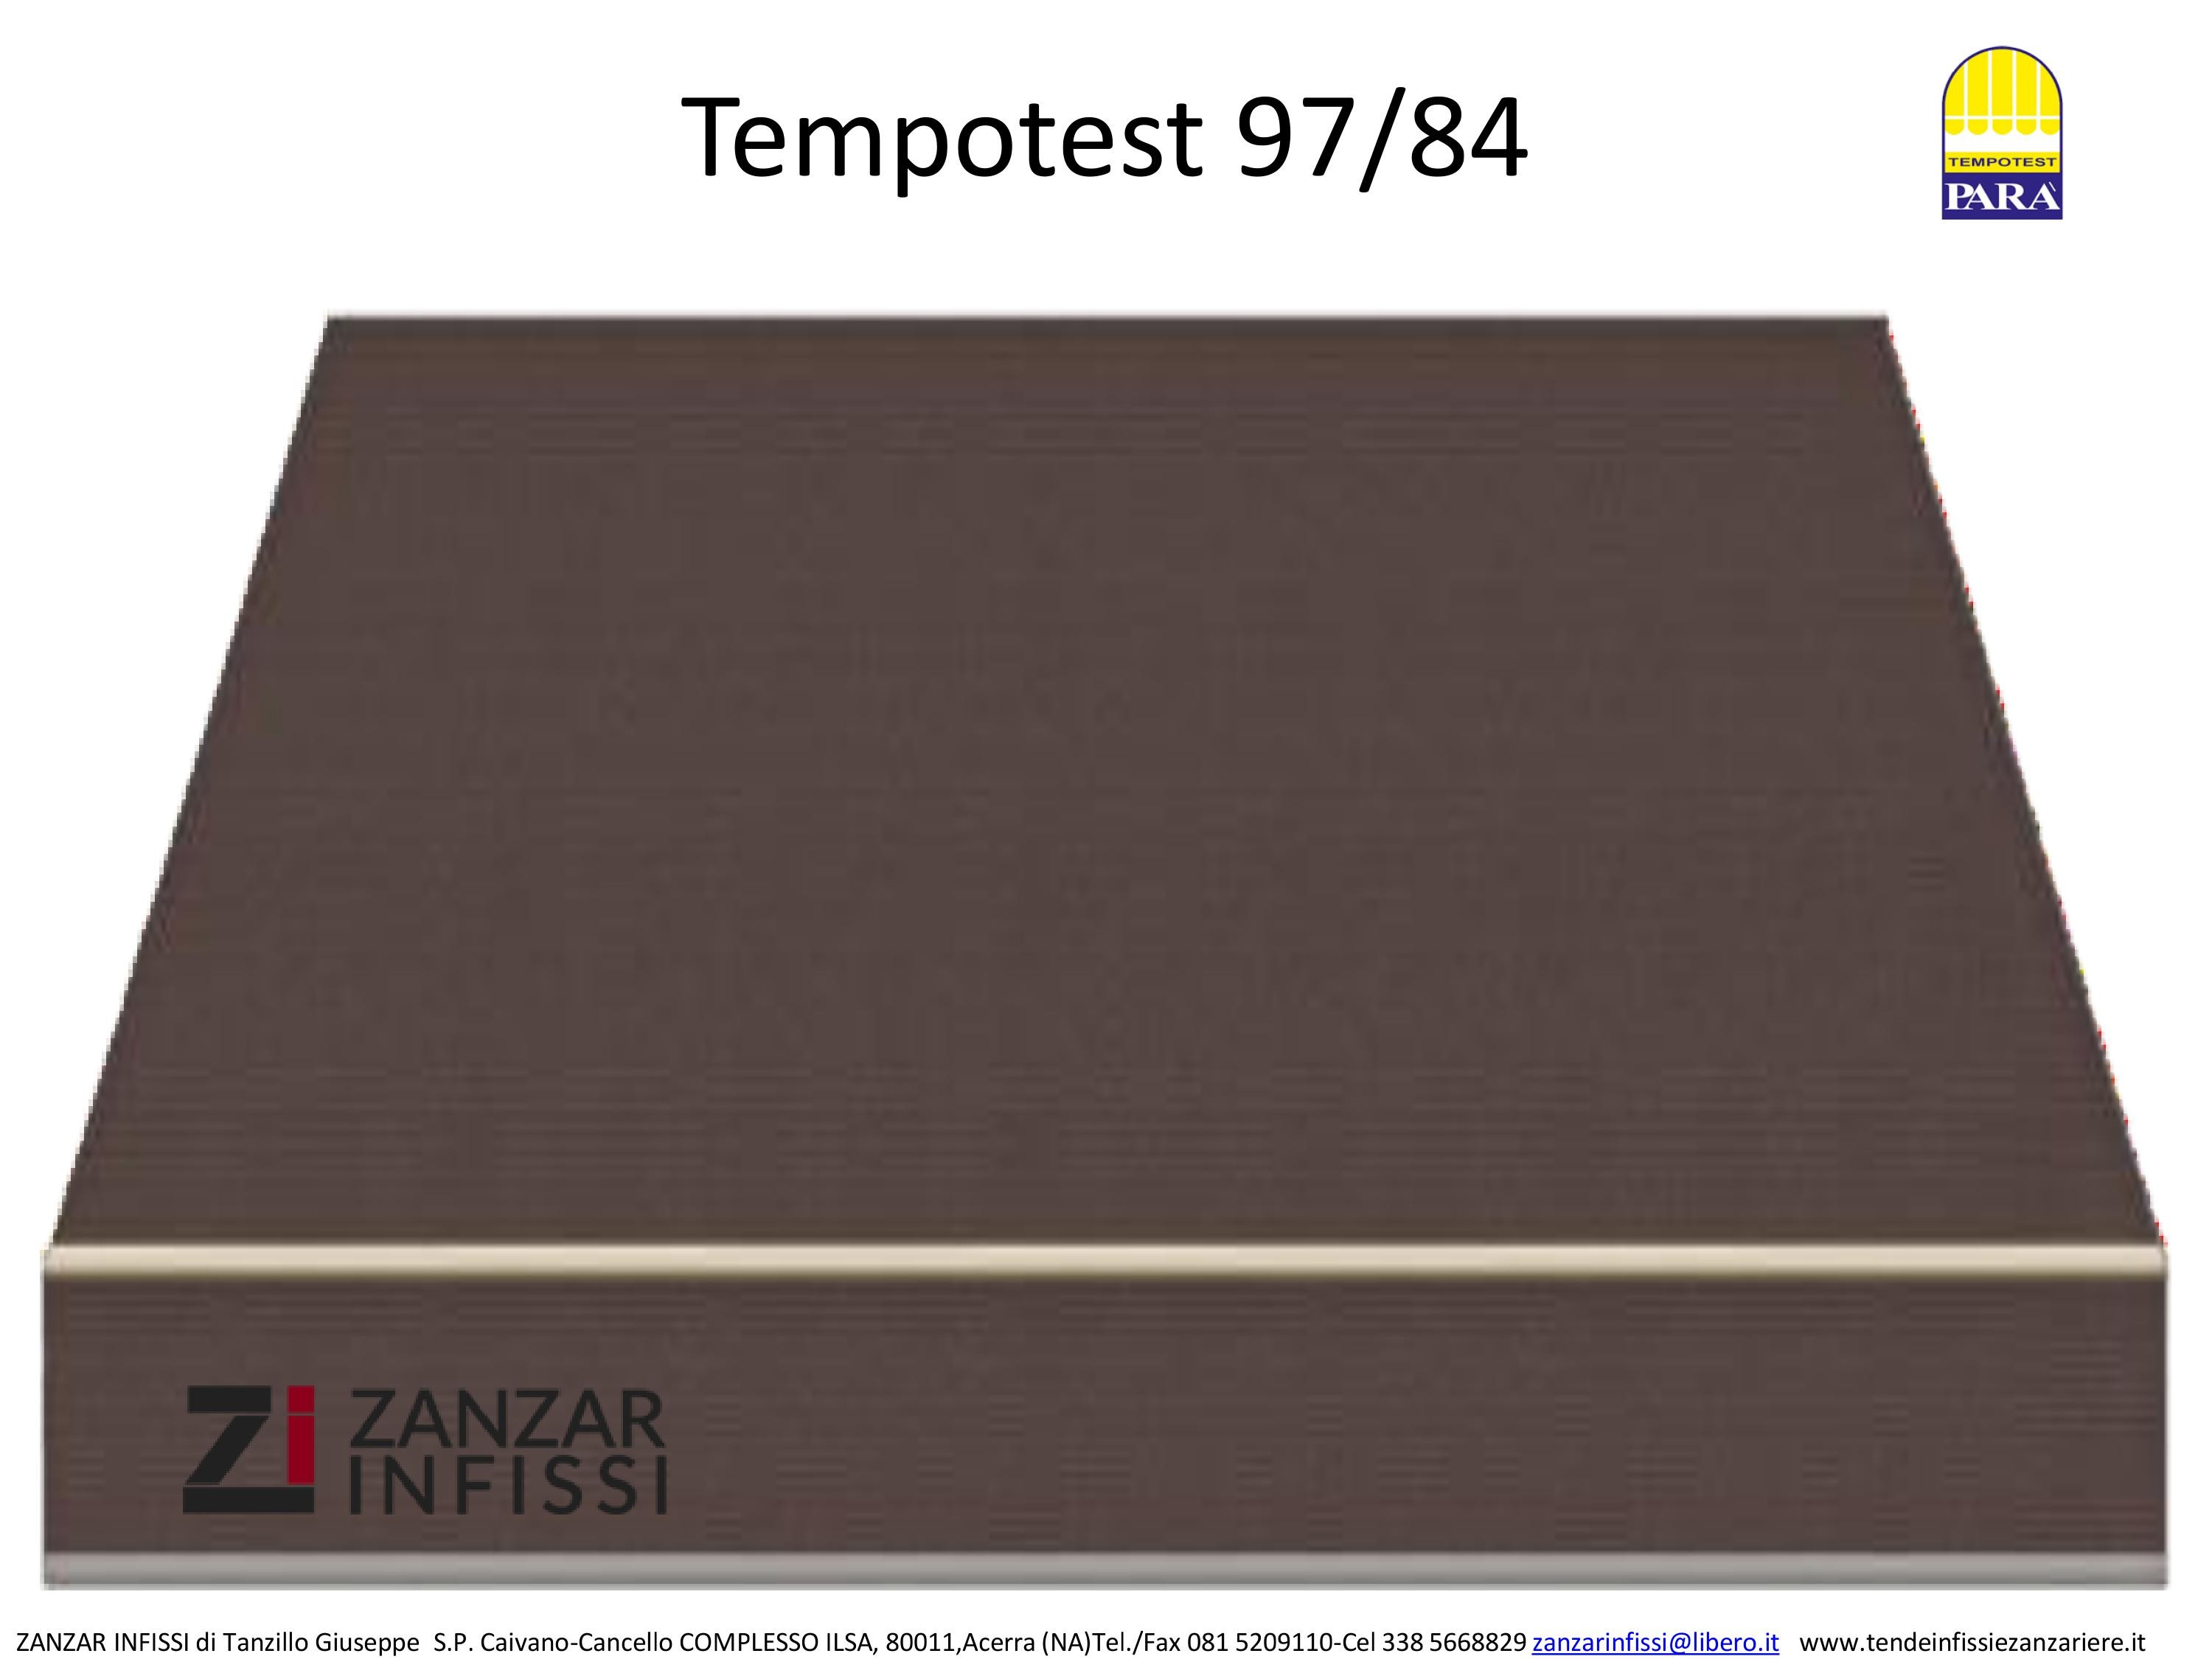 Tempotest 97/84